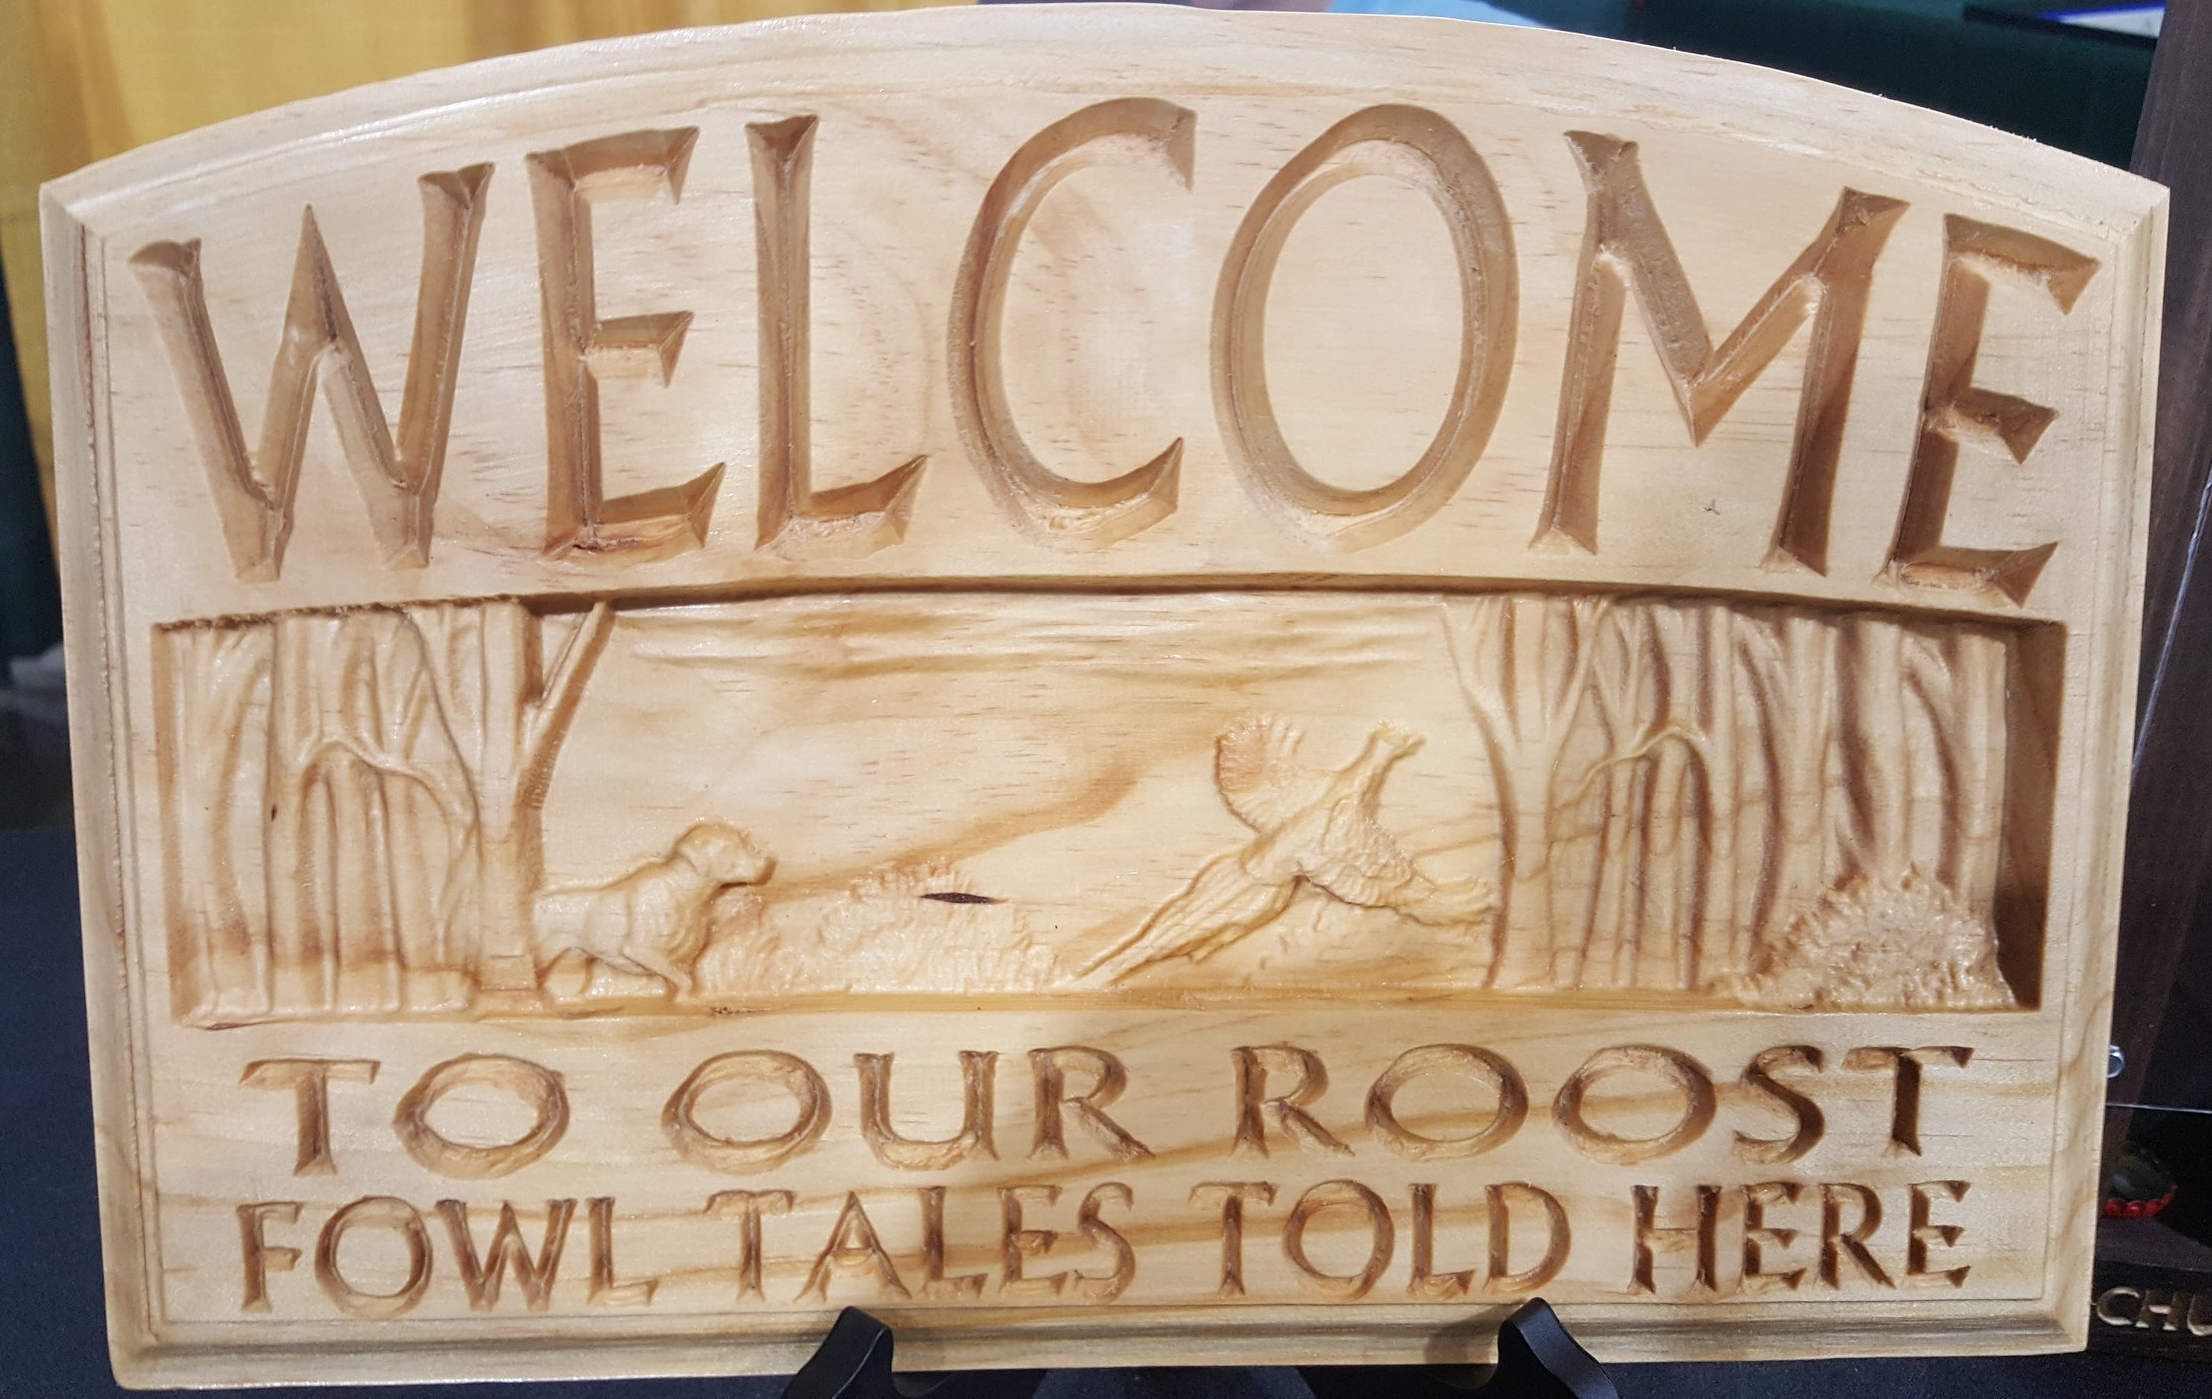 """""""Welcome to our roost - Fowl tales told here"""""""